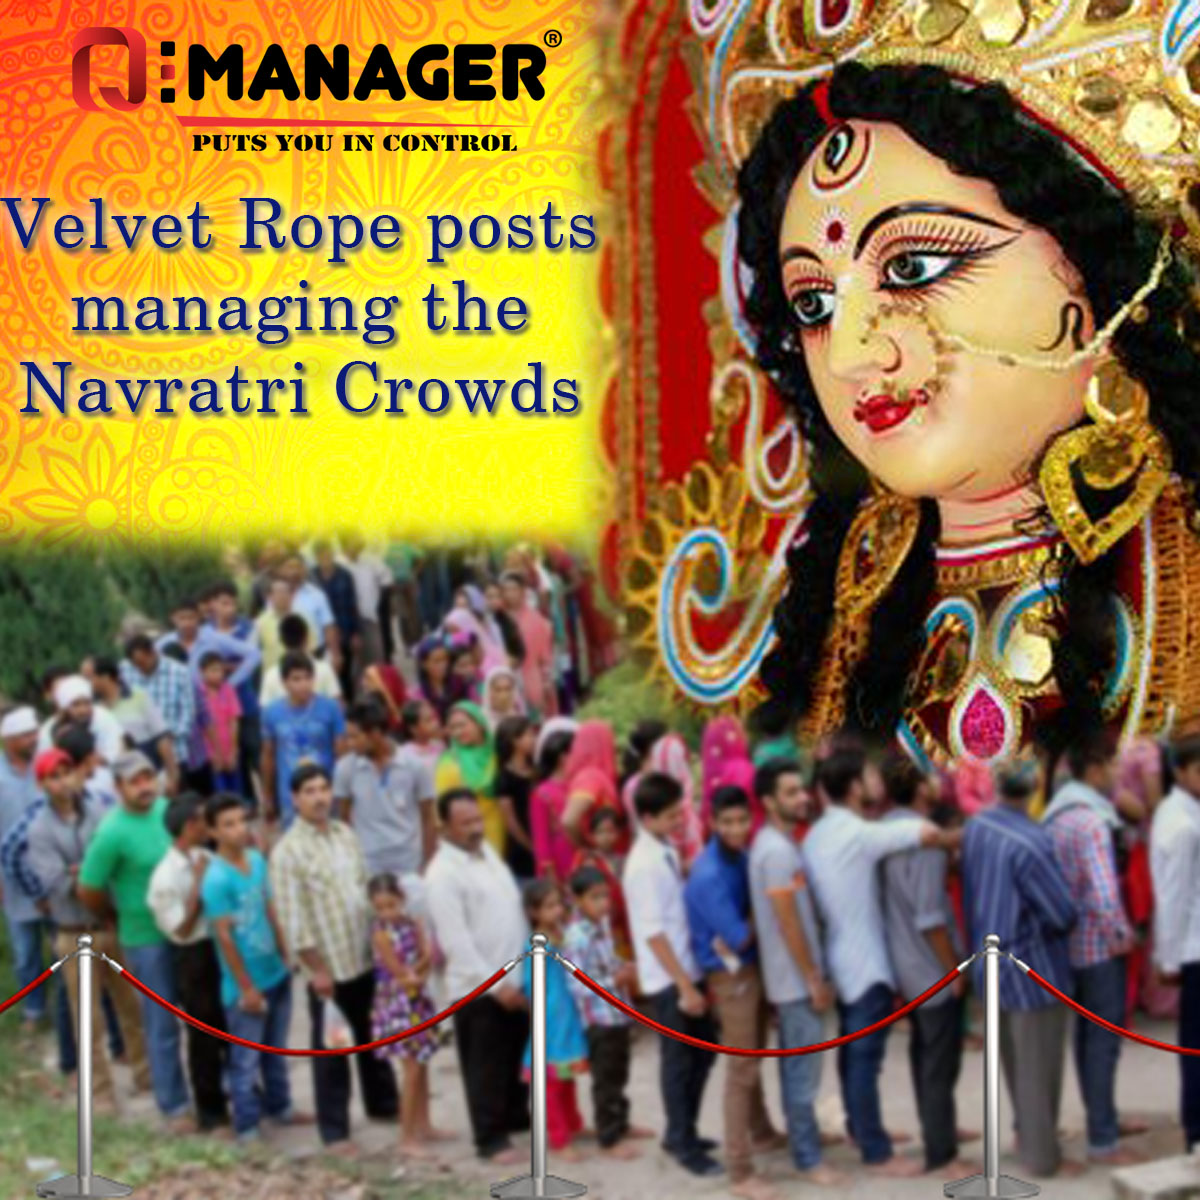 Velvet Rope posts managing the Navratri Crowds